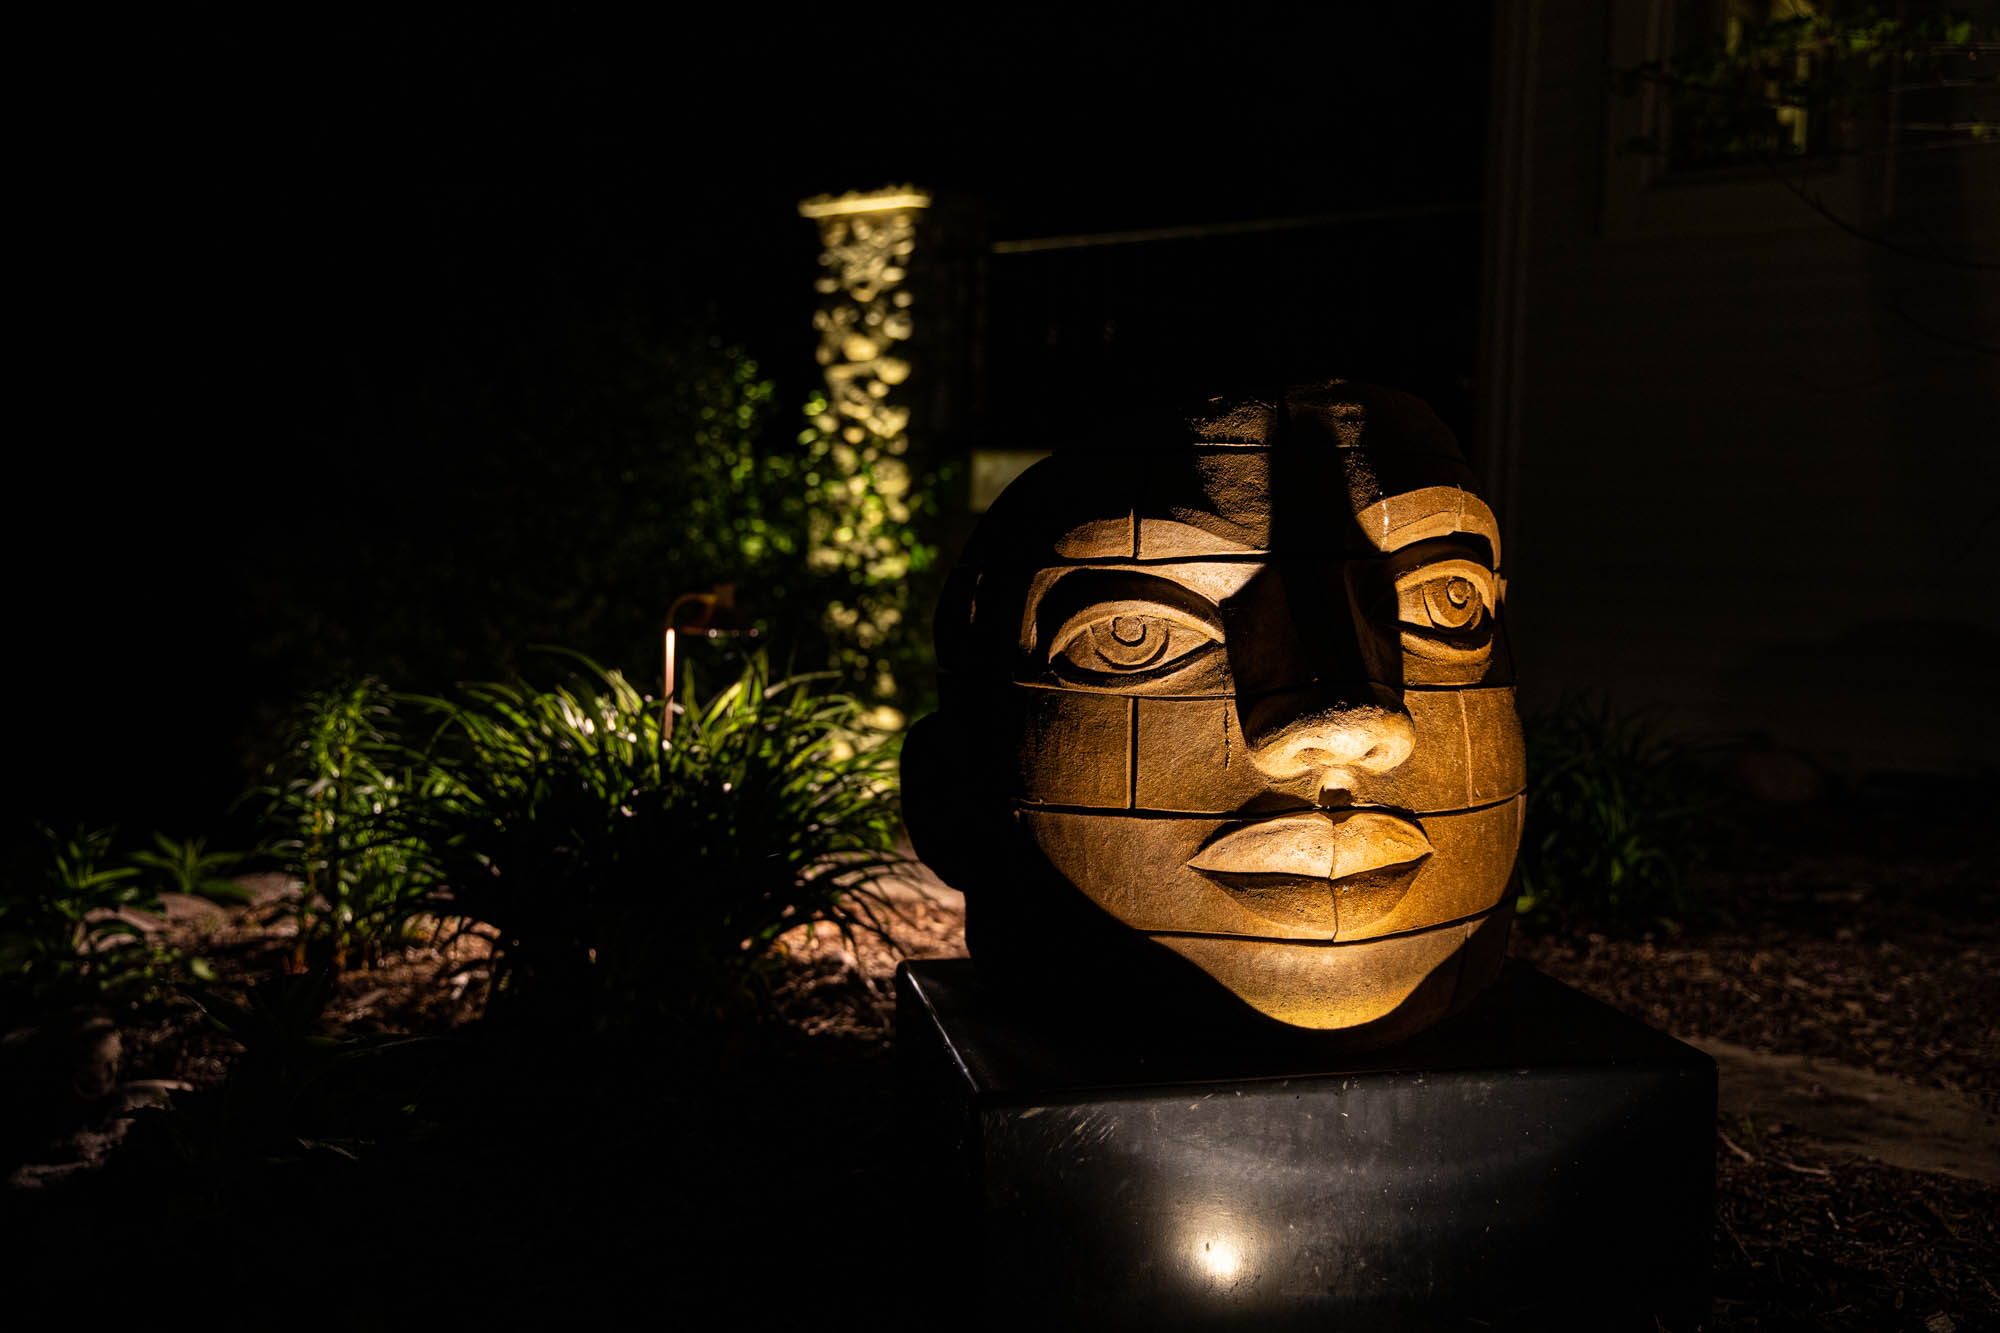 delafield landscape outdoor lighting night owl asian statue statuary